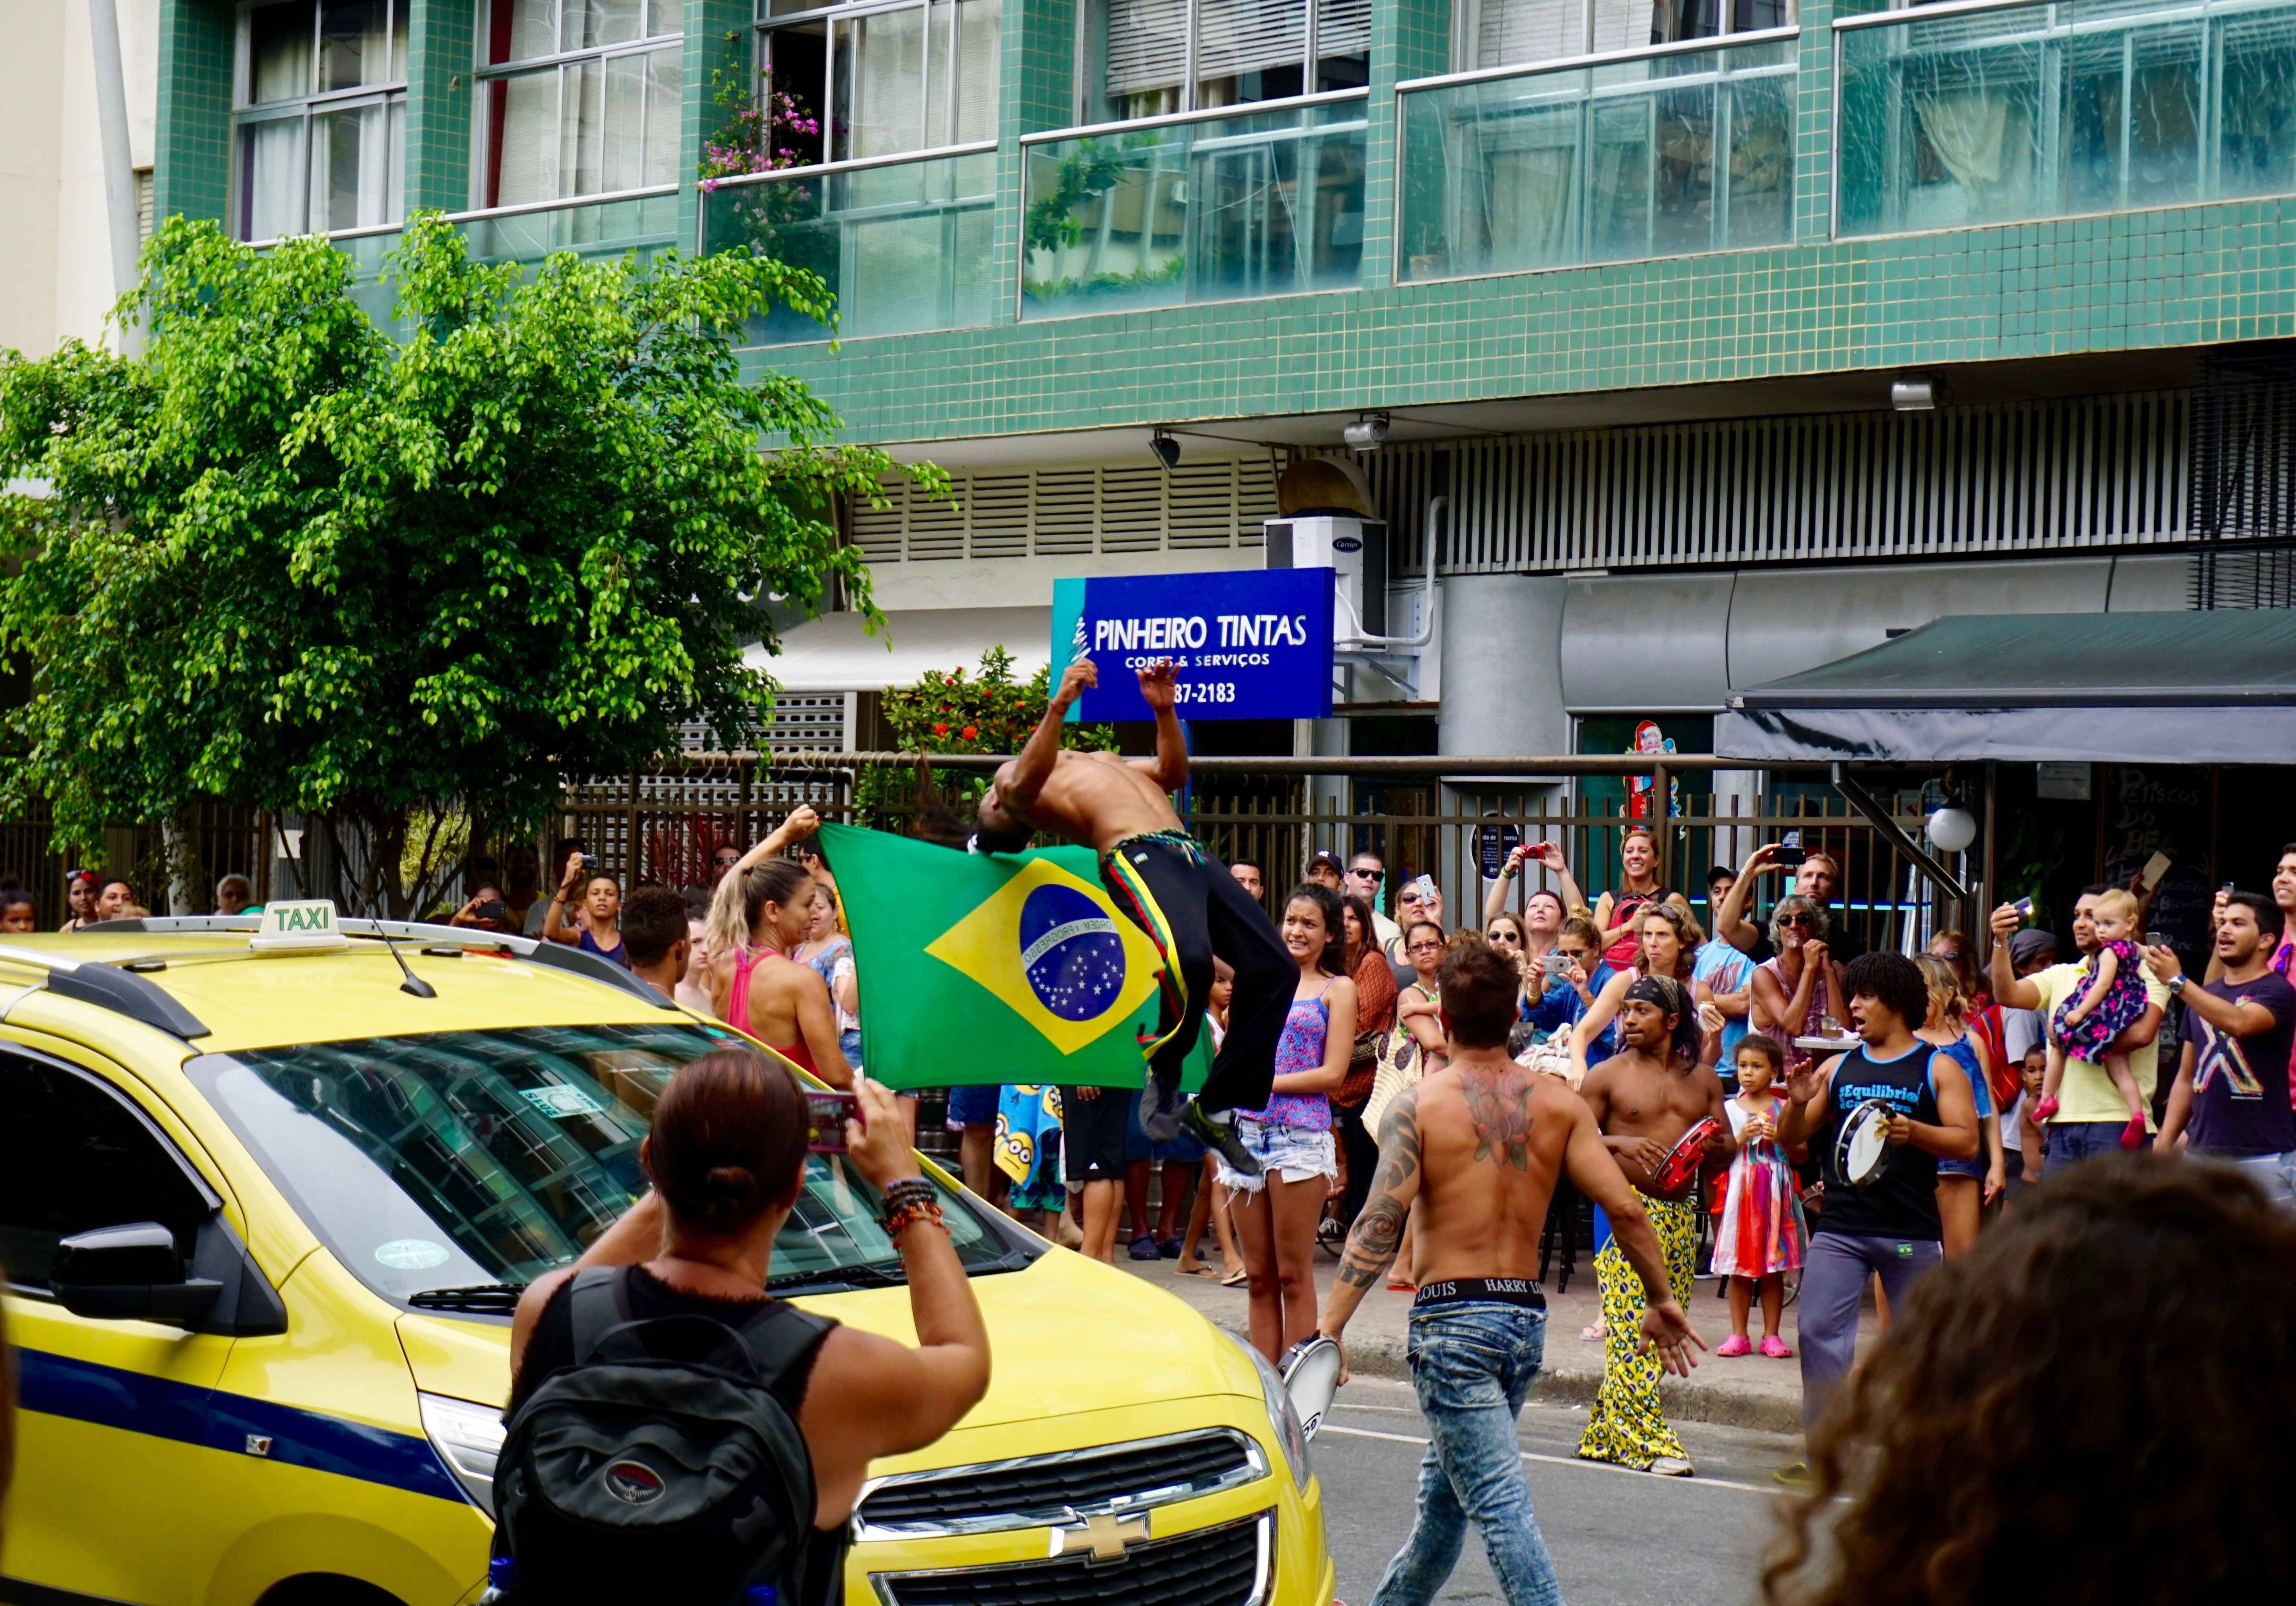 another day in Copacabana